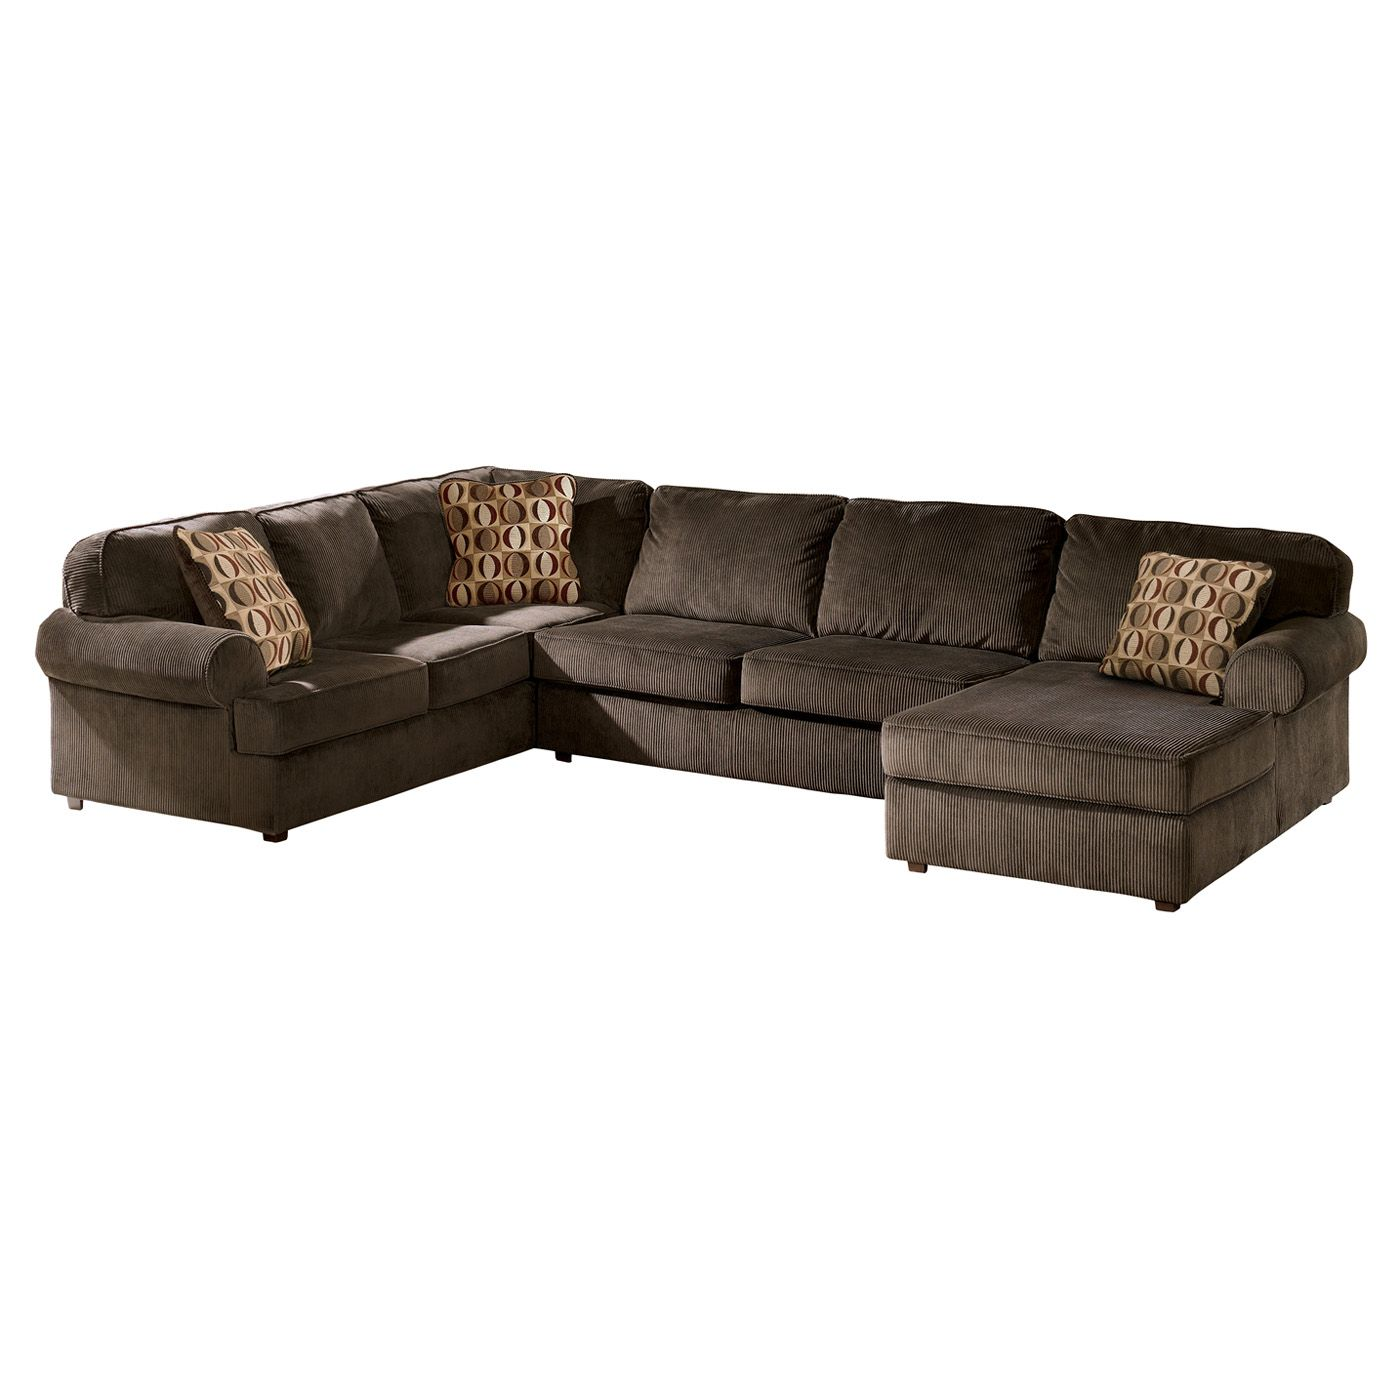 Shop Signature Design By Ashley Vista Sectional At Atg Stores